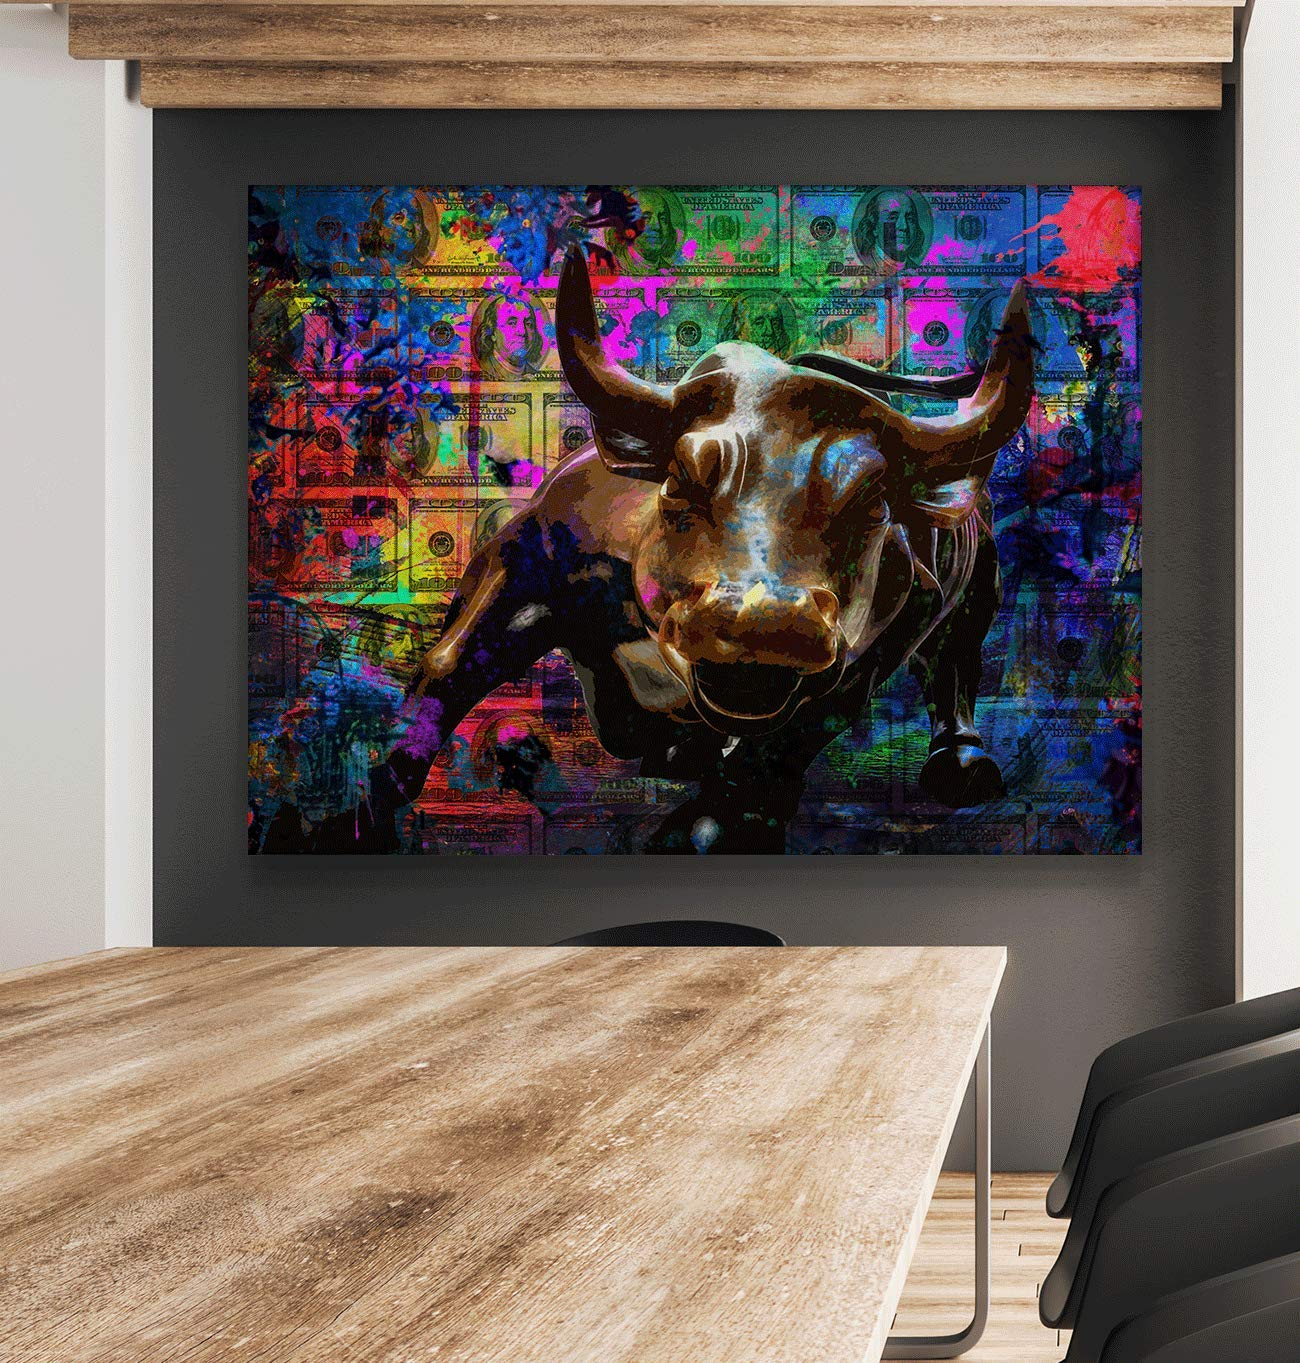 Wall Street Charging Bull Motivational Wall Art Canvas Print, Office Decor, Inspiring Framed Prints, Inspirational Entrepreneur Quotes for Wall Art Decoration 24 x 36